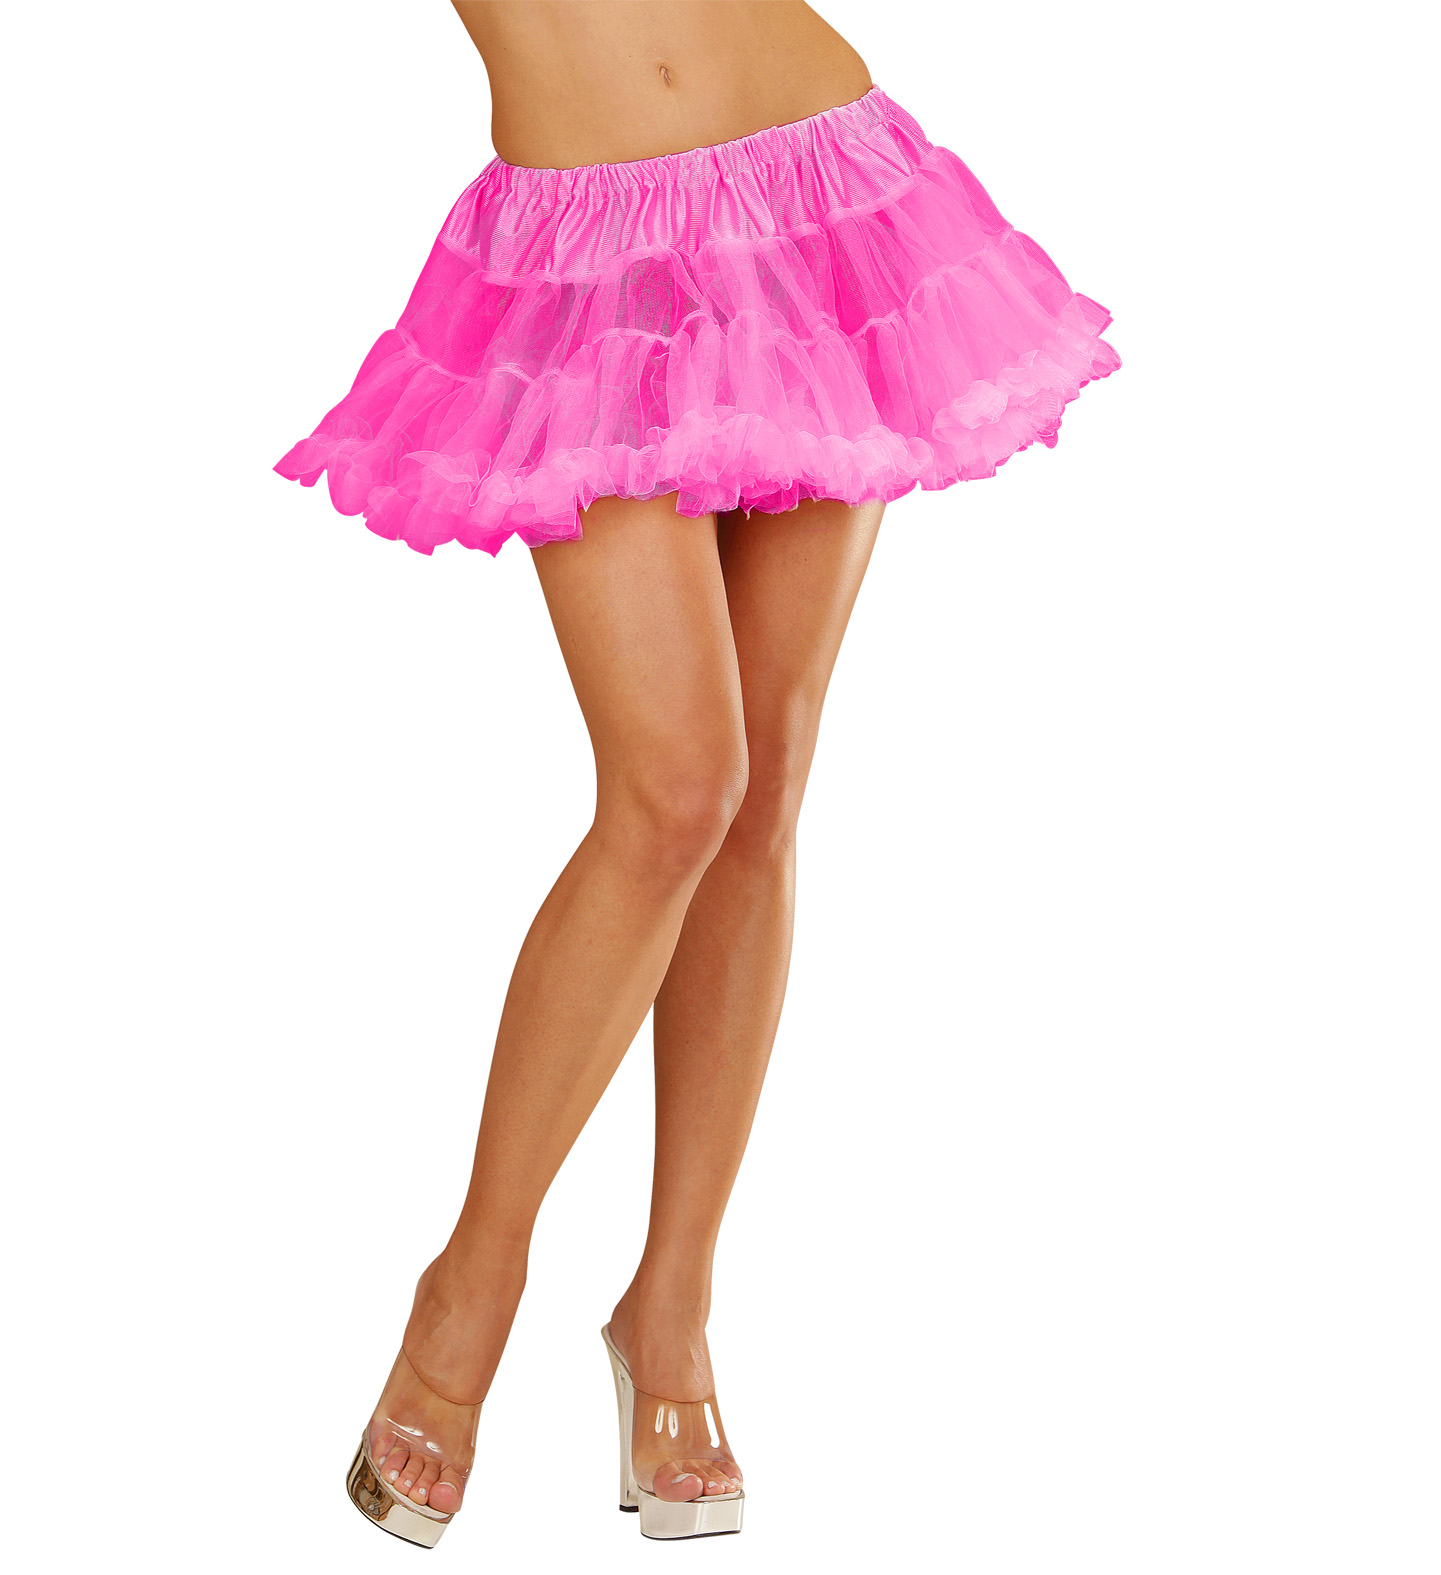 Deluxe Neon Tutu - Tutu Rara Skirt Fancy Dress